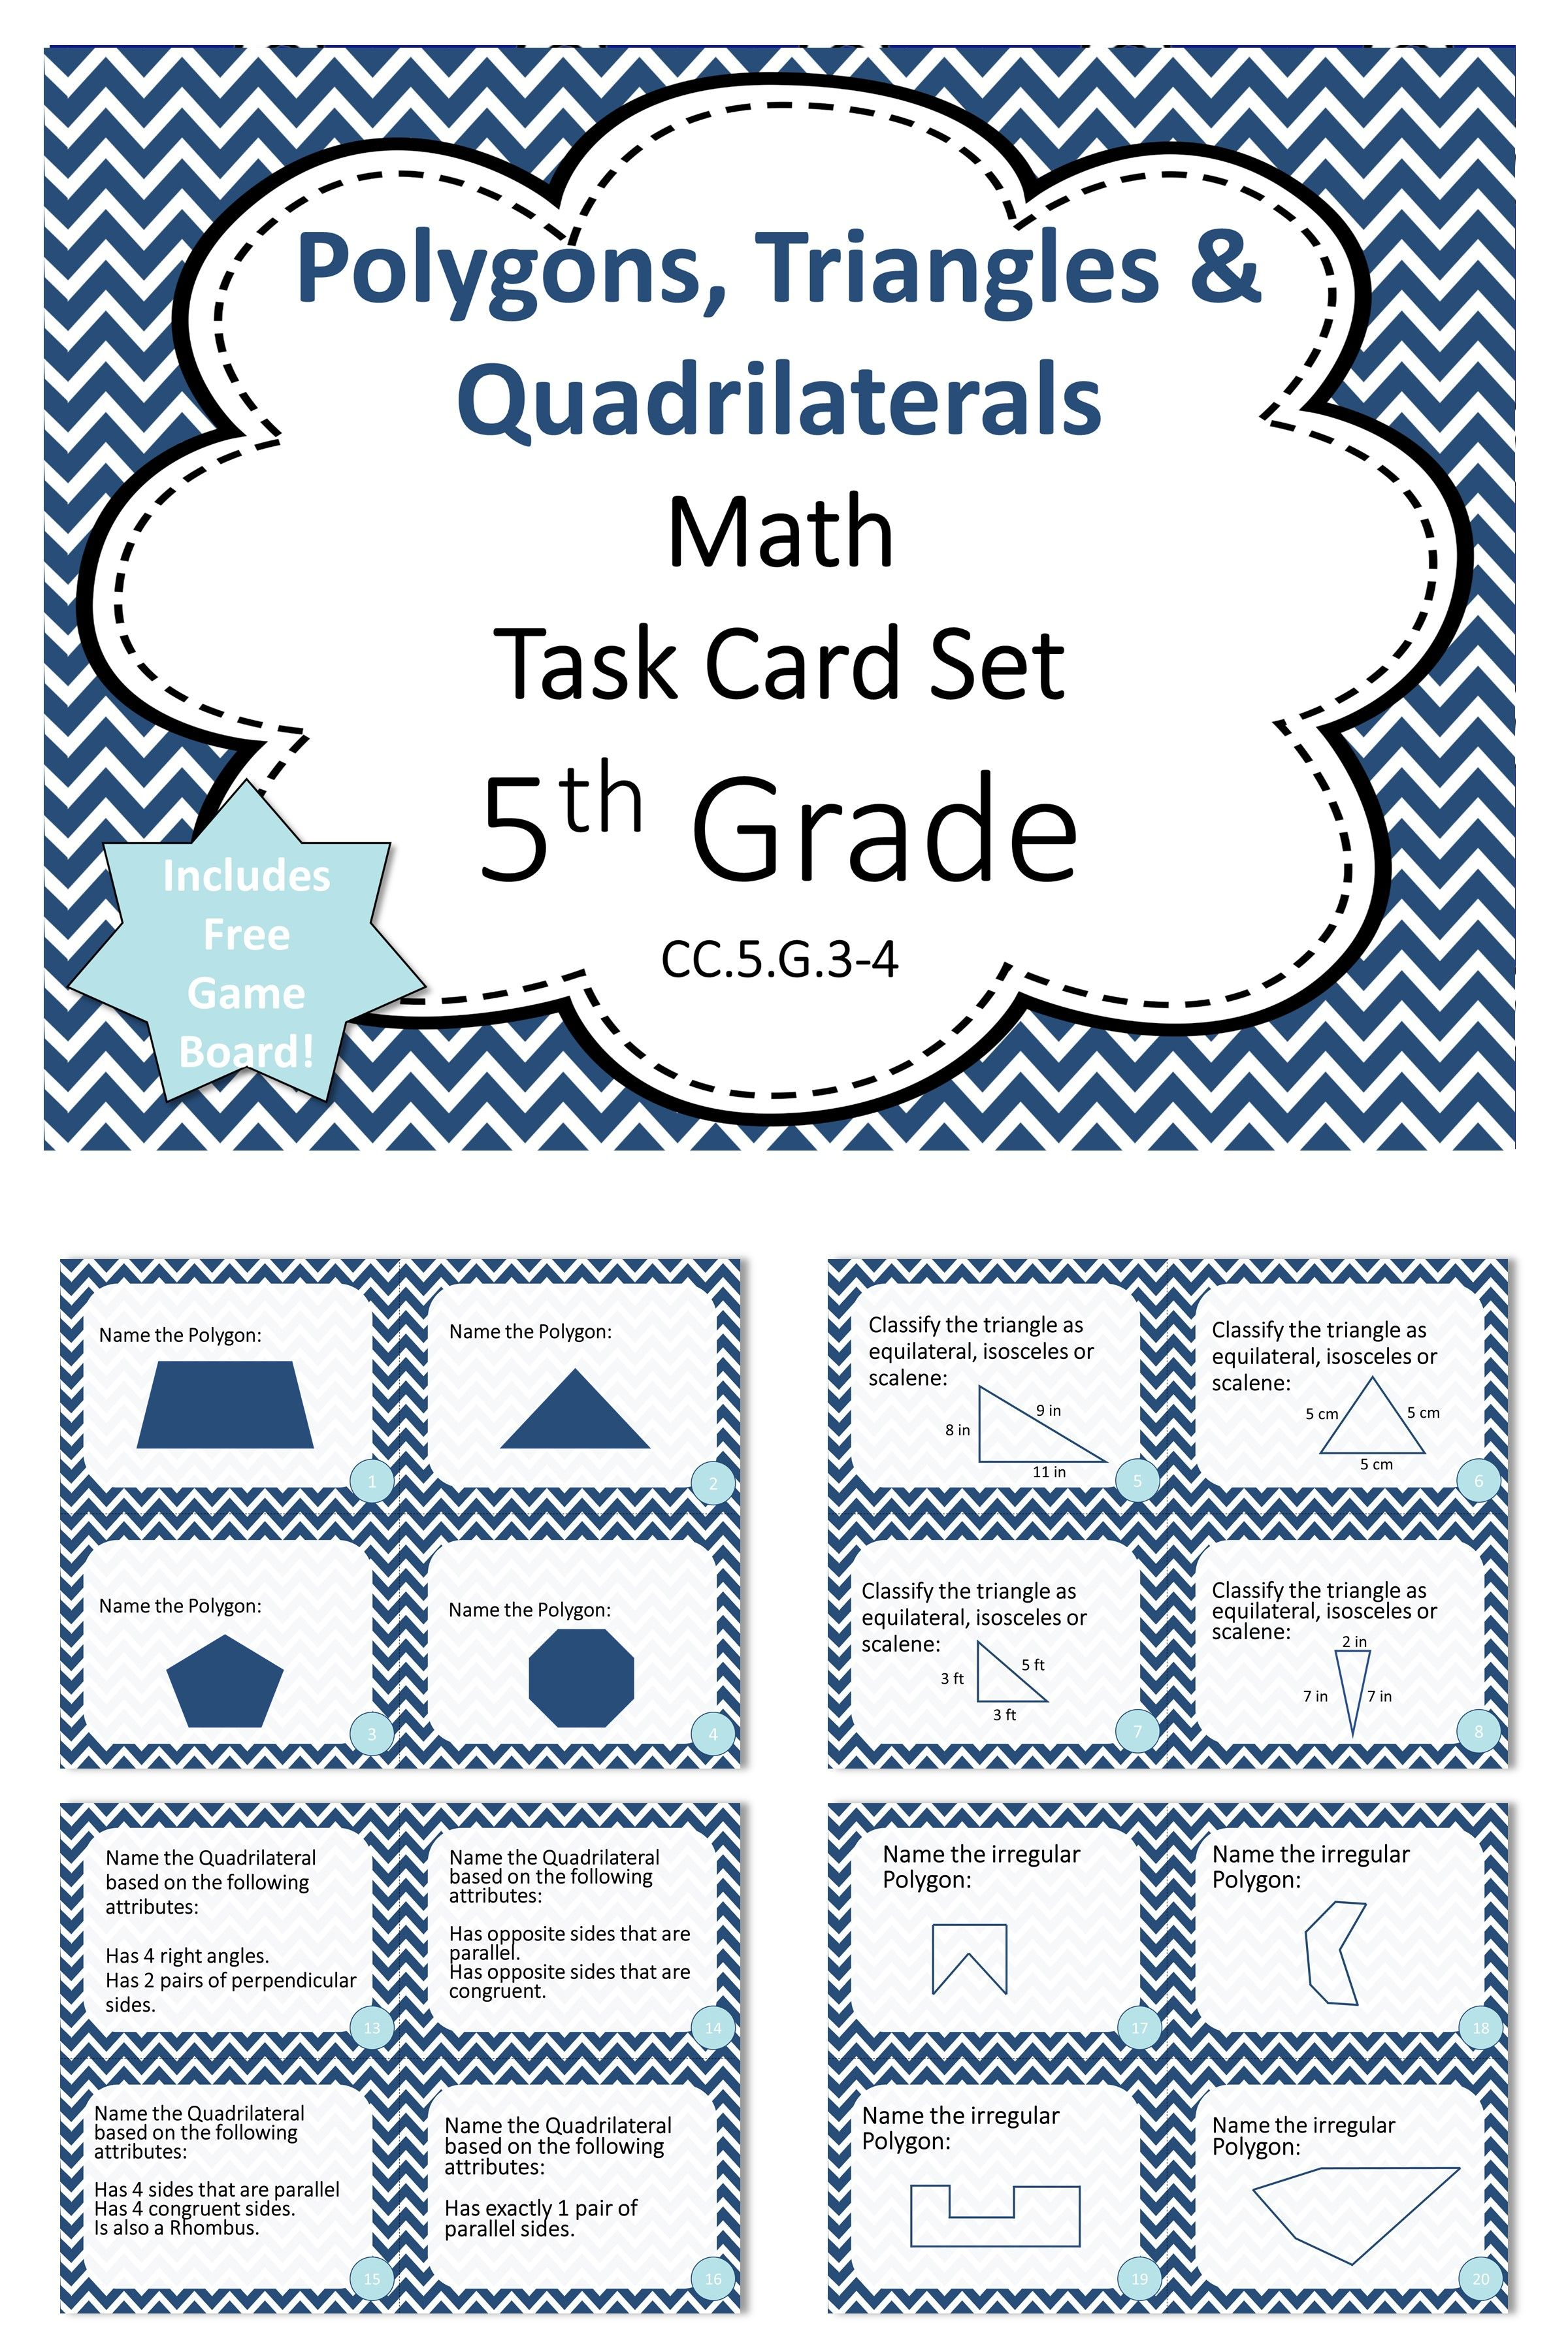 5th Grade Polygons Triangles And Quadrilaterals Math Task